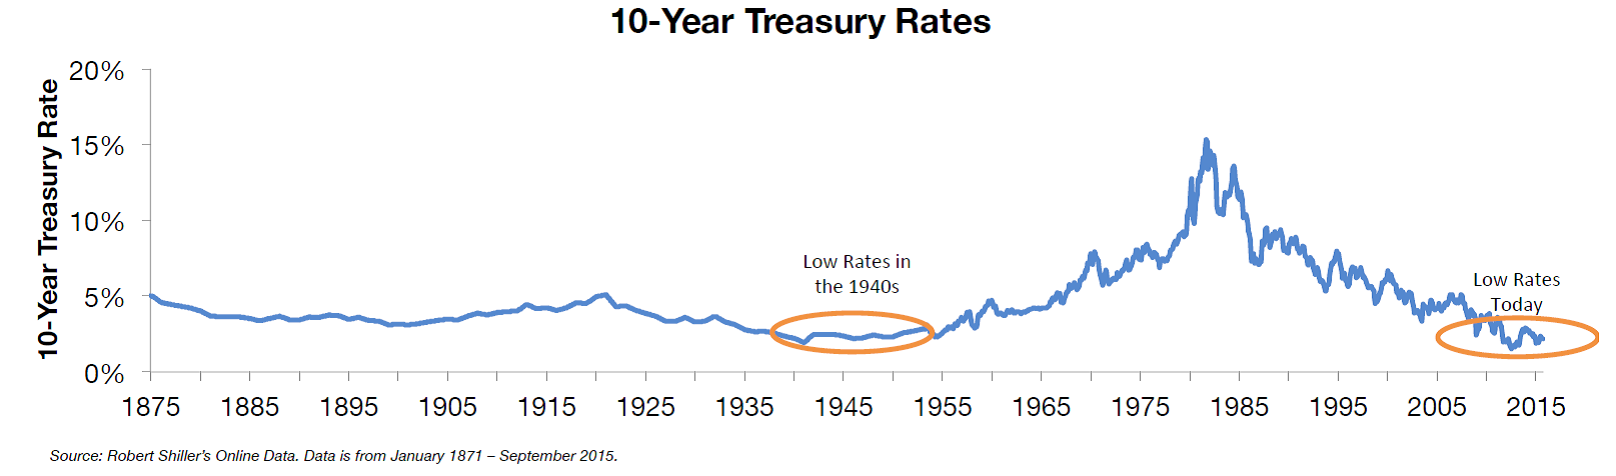 10-year-treasury-rates